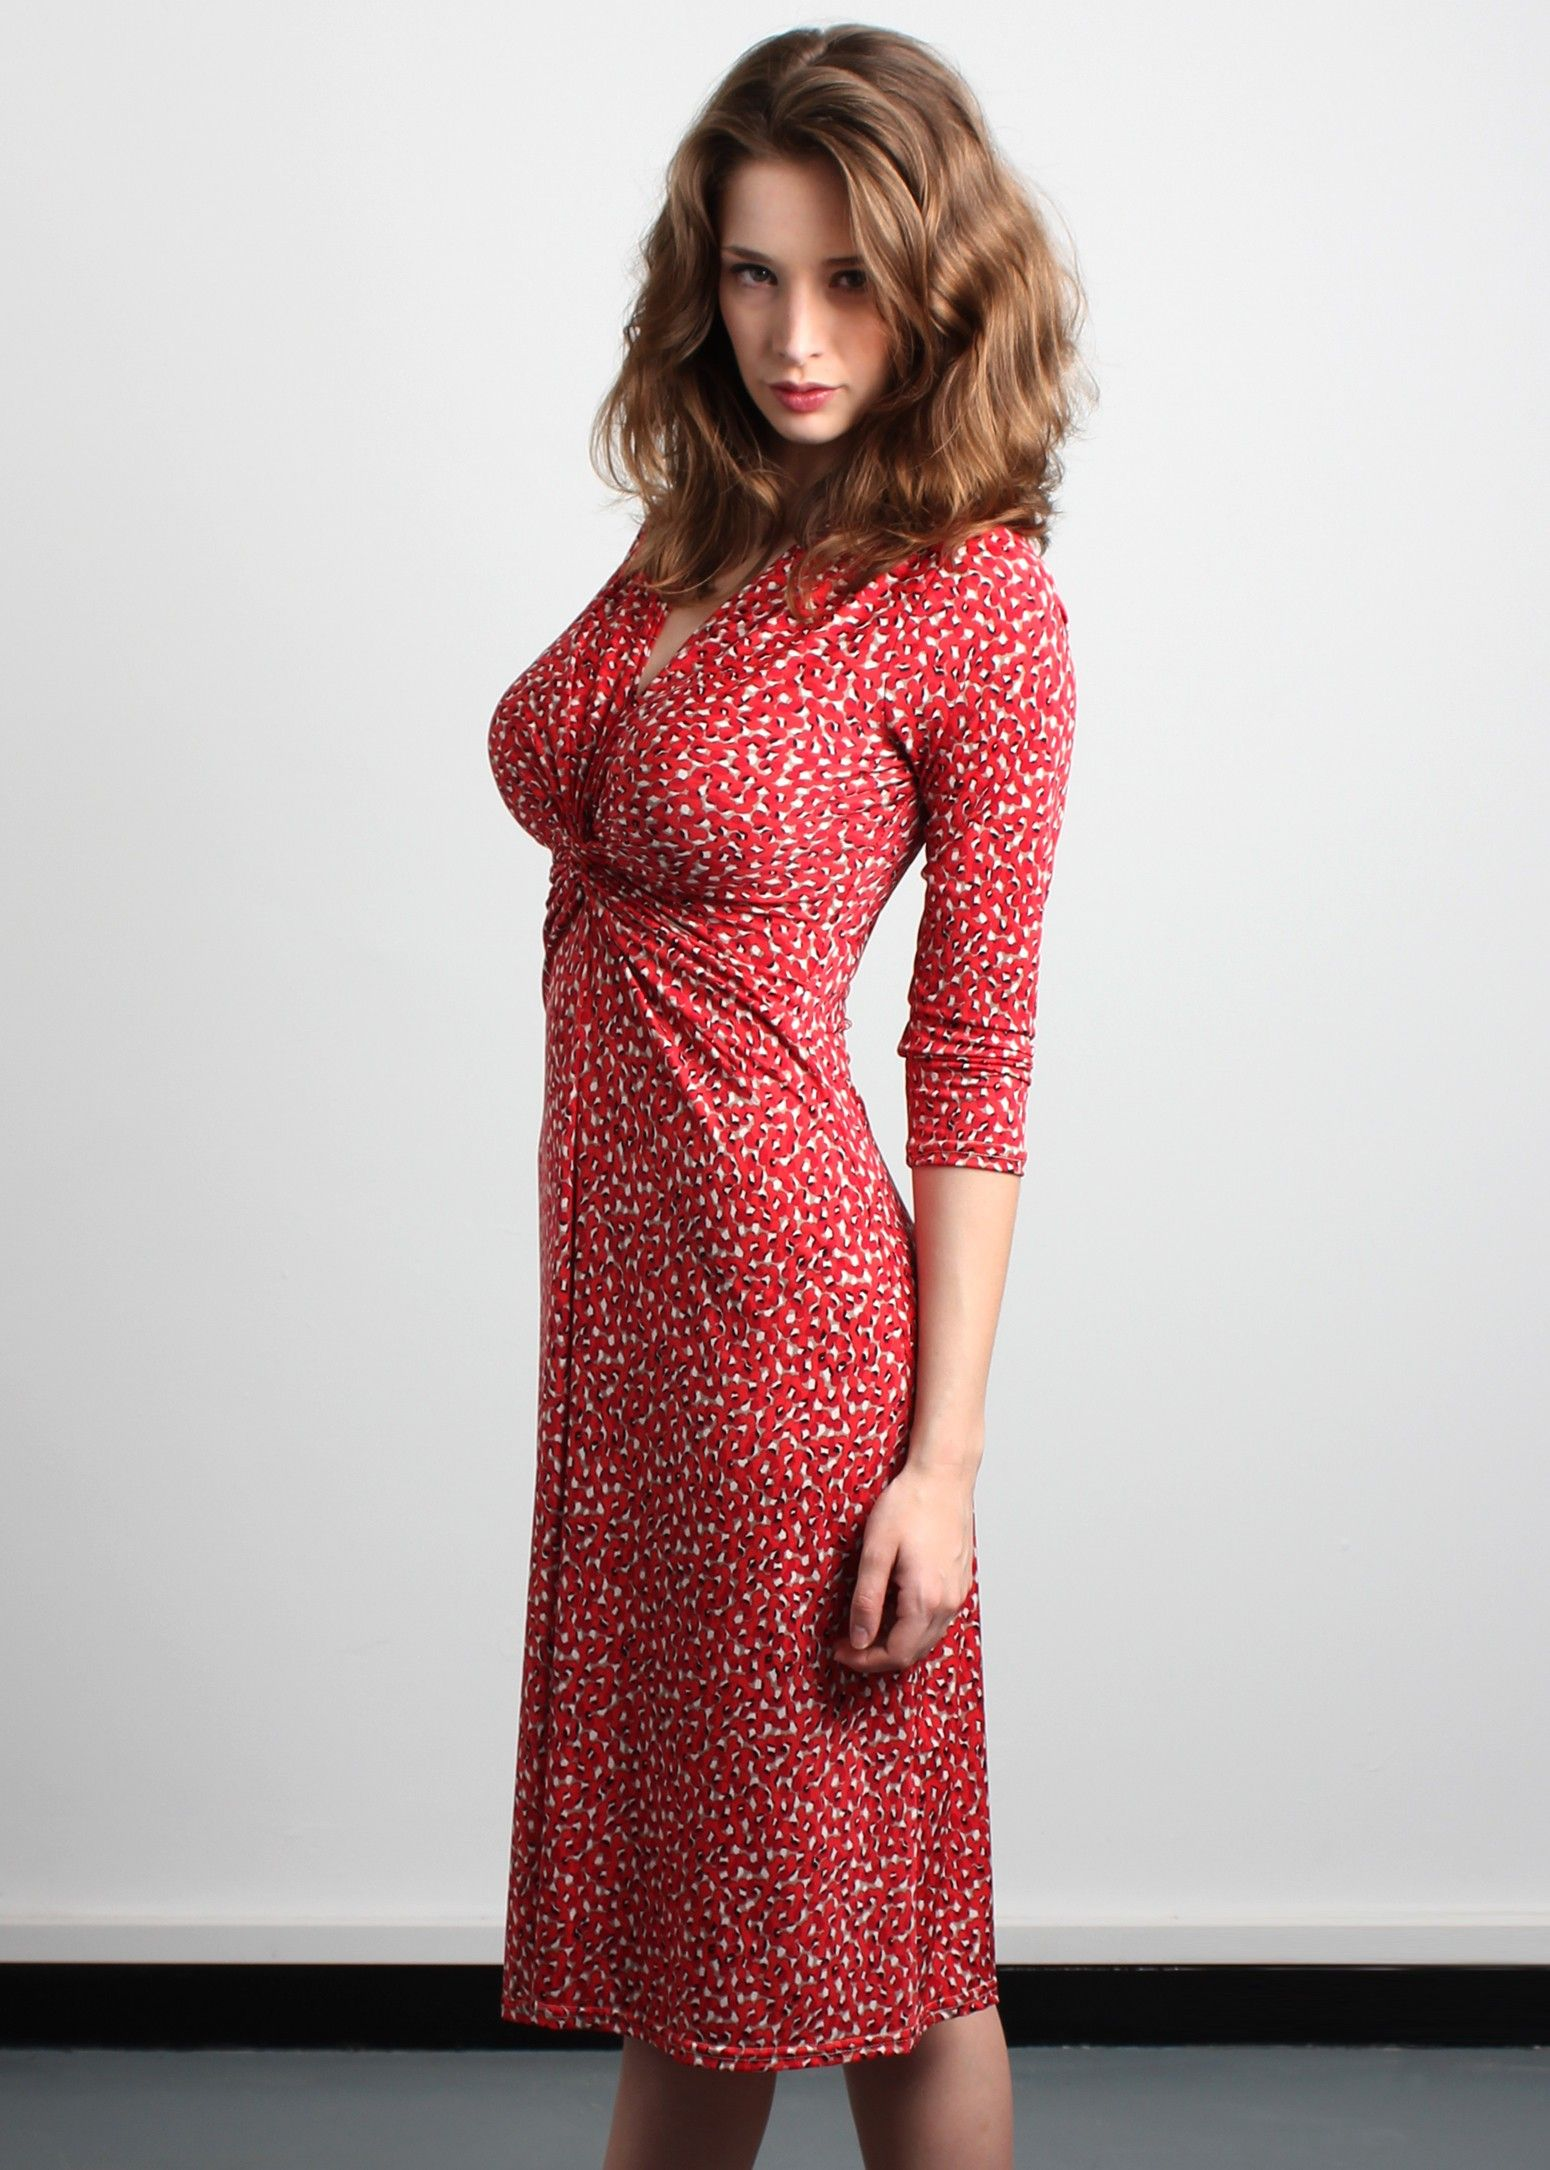 The Berry Dress Which Fits And Flatters Women With Busts From D To H Cups